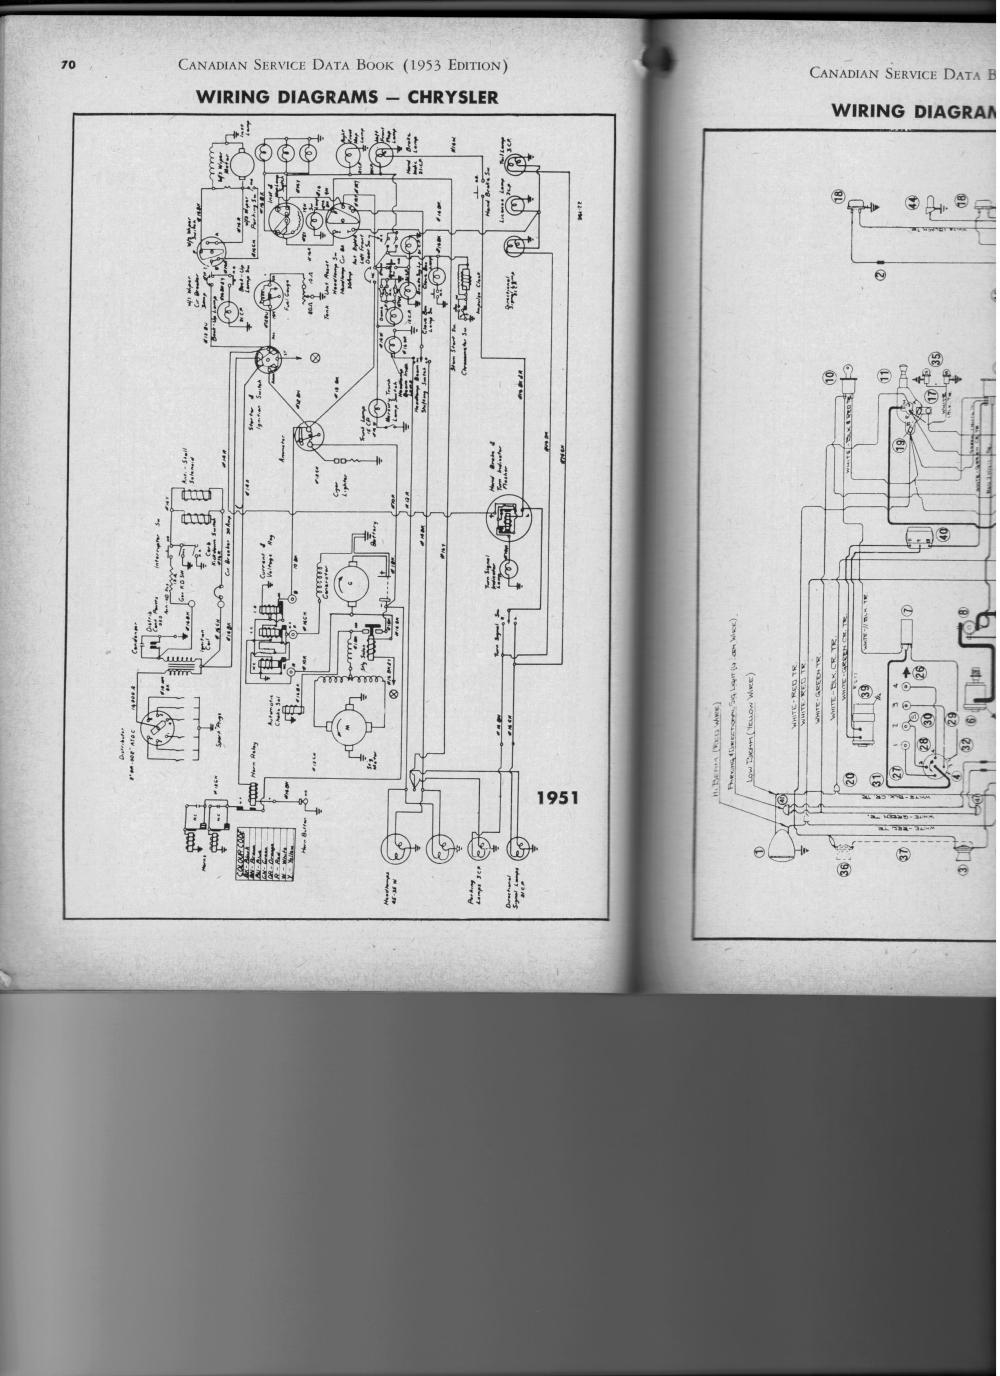 medium resolution of desoto wiring diagram wiring diagram for youfluid drive harness diagram needed chrysler products general 1955 desoto